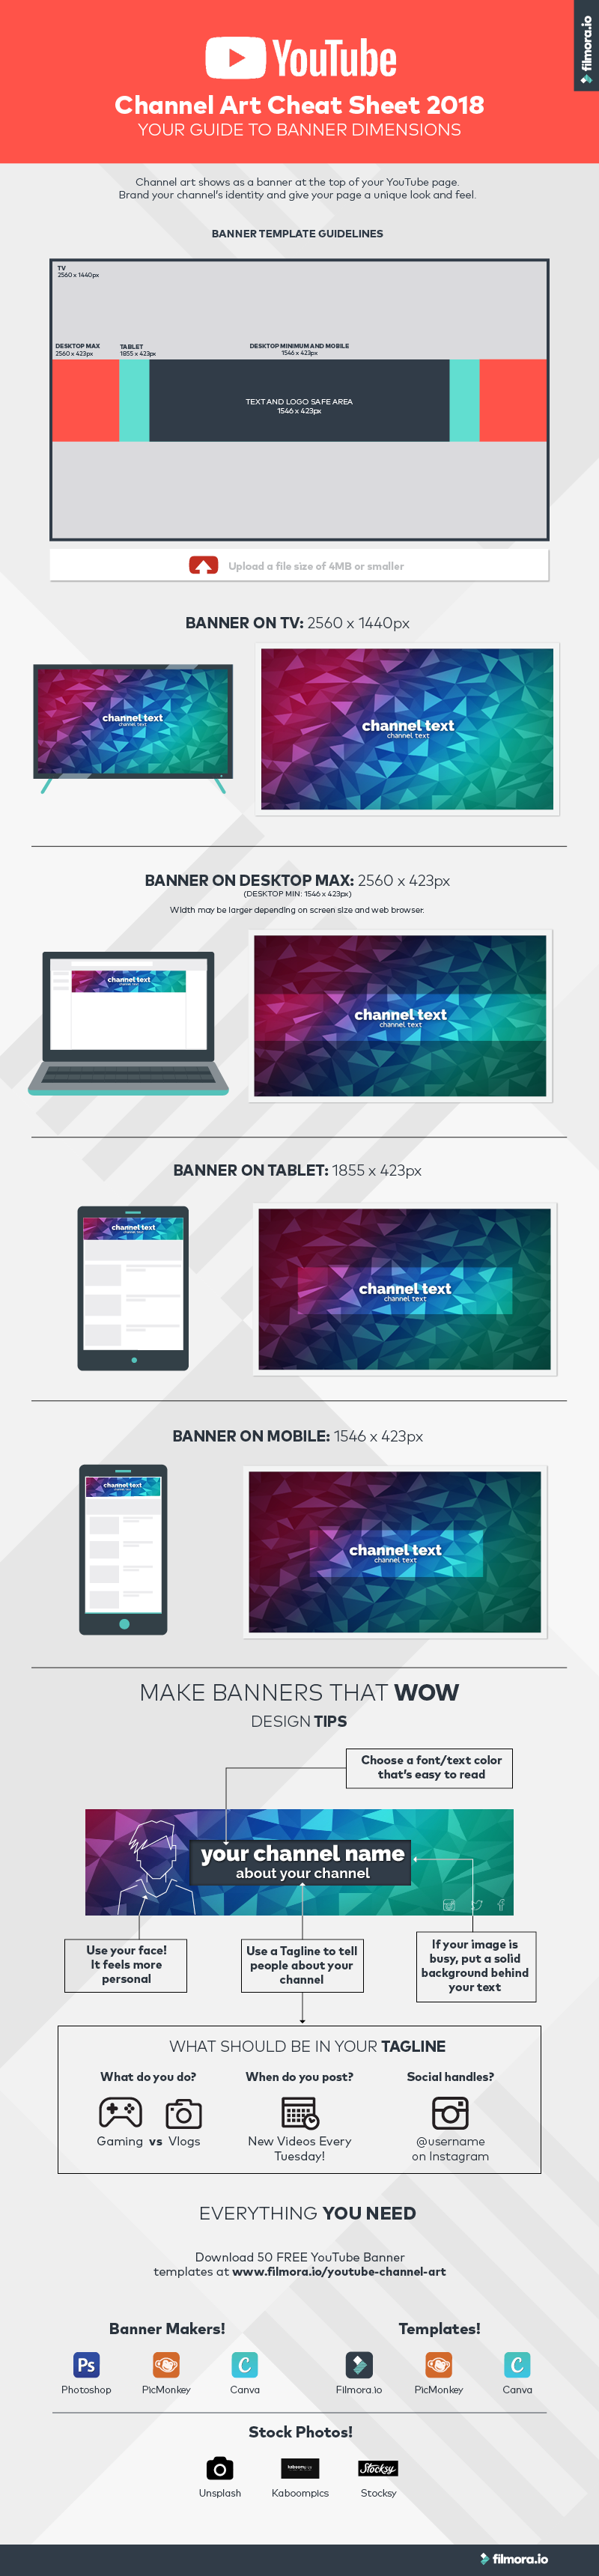 infographic - YouTube Channel Art Dimensions - Banner Sizes and Design Tips!